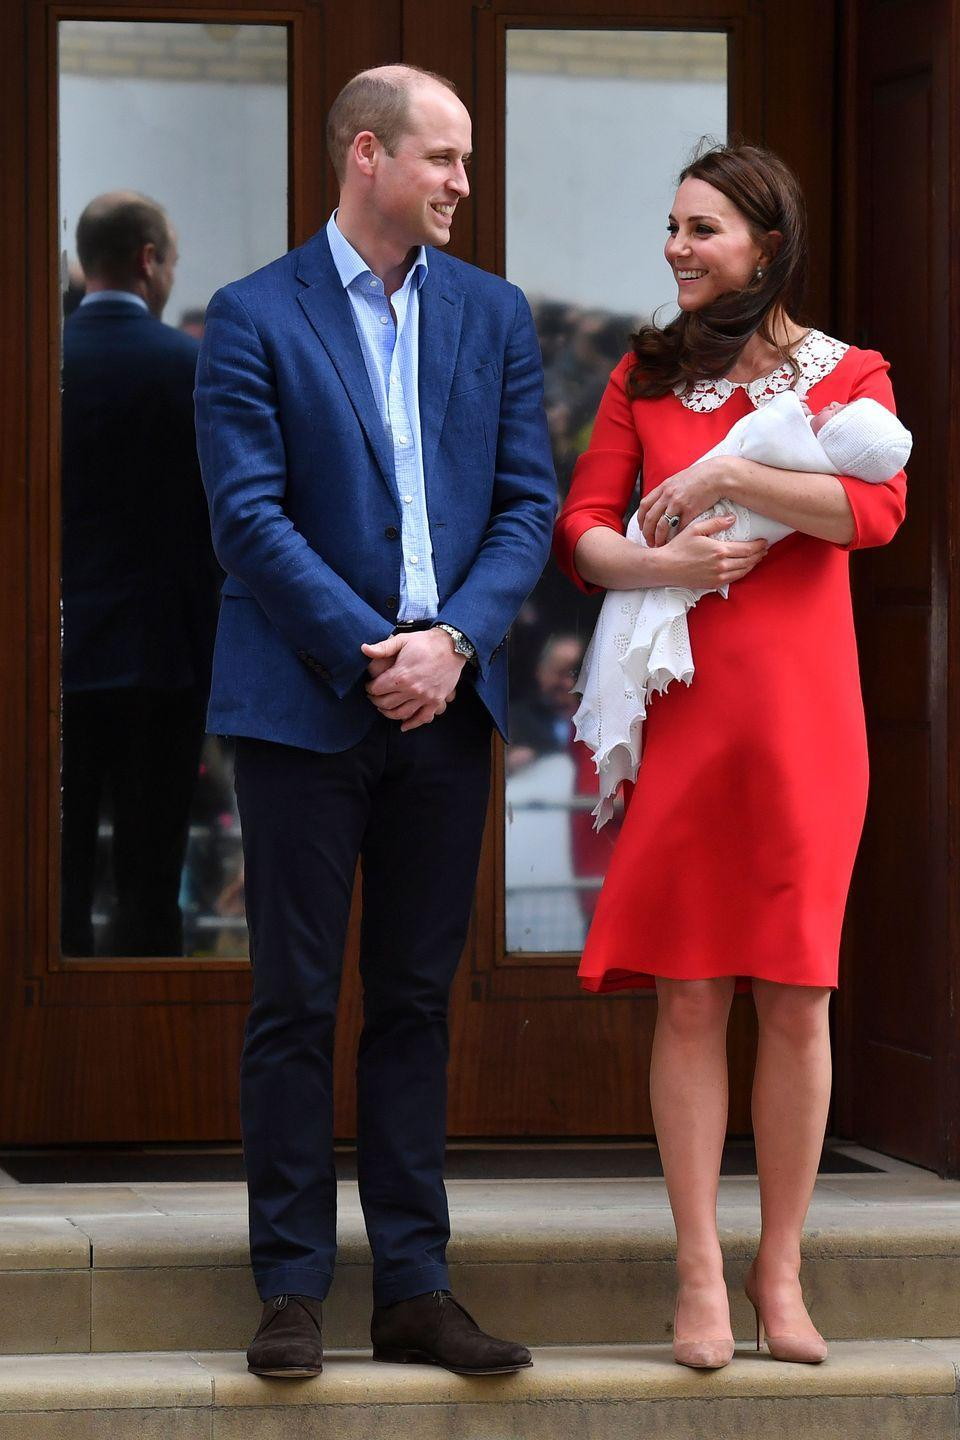 "<p>The Duchess of Cambridge introduced baby number three to <a href=""https://www.townandcountrymag.com/society/tradition/a19675070/kate-middleton-third-baby-lindo-wing-outfit/"" rel=""nofollow noopener"" target=""_blank"" data-ylk=""slk:the world wearing a custom Jenny Packham dress"" class=""link rapid-noclick-resp"">the world wearing a custom Jenny Packham dress</a>, complete with a chic peter pan collar. The Duchess accessorized with a pair of Gianvito Rossi heels. </p>"